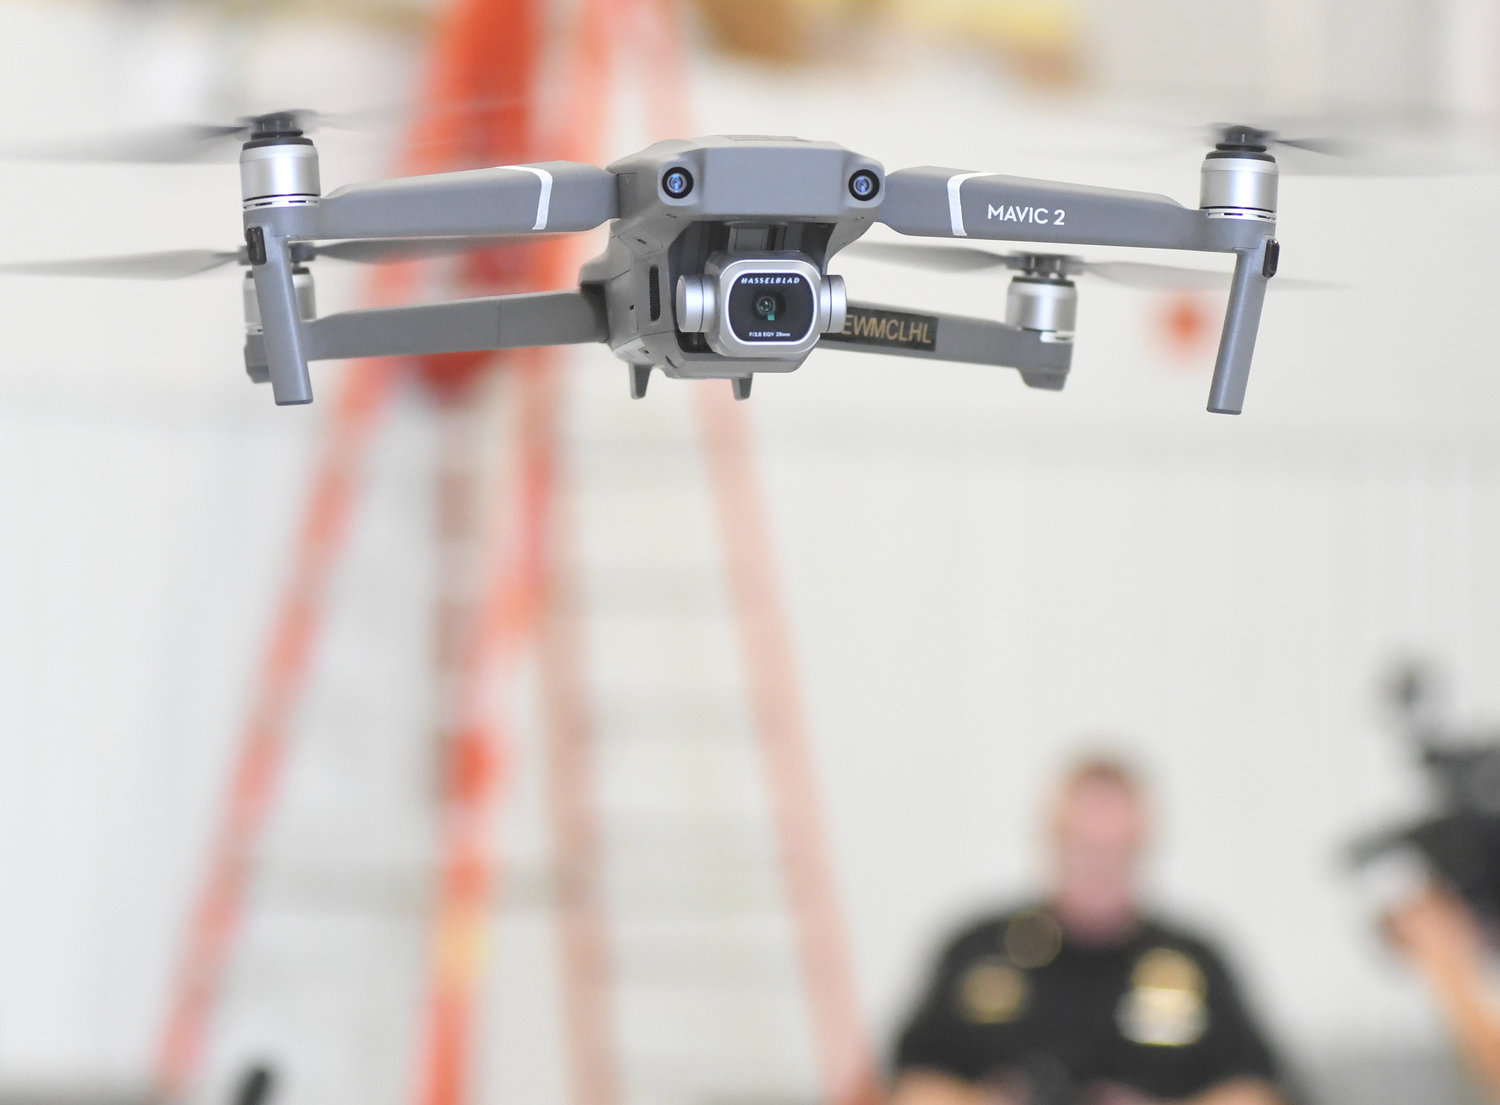 UP, UP AND AWAY — A Mavic Pro drone hovers a few feet above ground as part of Sheriff Robert M. Maciol's new drone unit rollout this morning. This battery-powered camera drone is one of eight in the new fleet, and costs about $1,000.